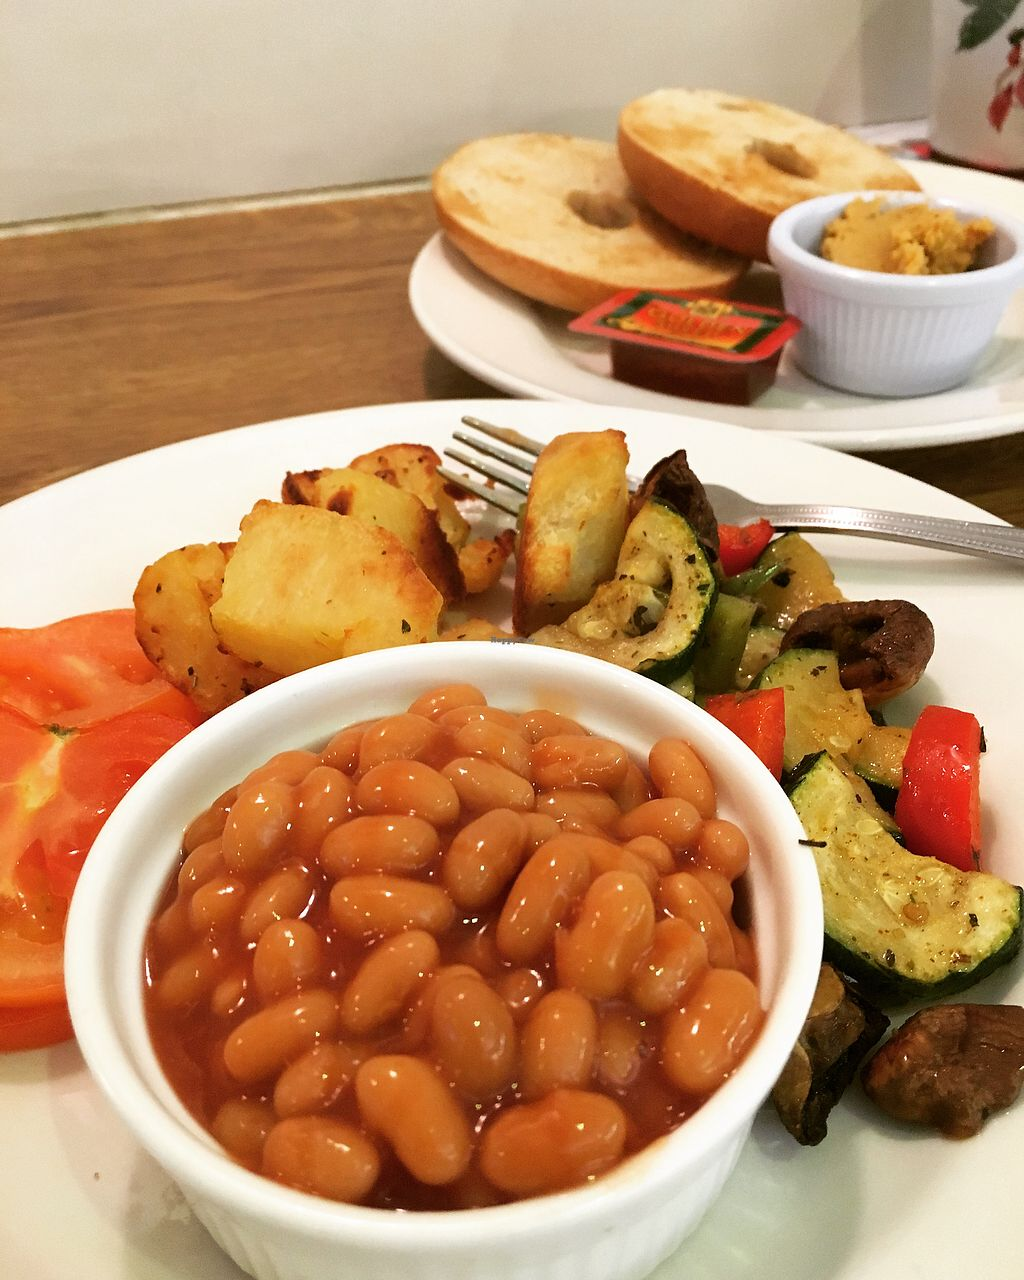 """Photo of Food for Thought  by <a href=""""/members/profile/Ajolote"""">Ajolote</a> <br/>Traditional Irish breakfast  <br/> March 28, 2018  - <a href='/contact/abuse/image/6877/377137'>Report</a>"""